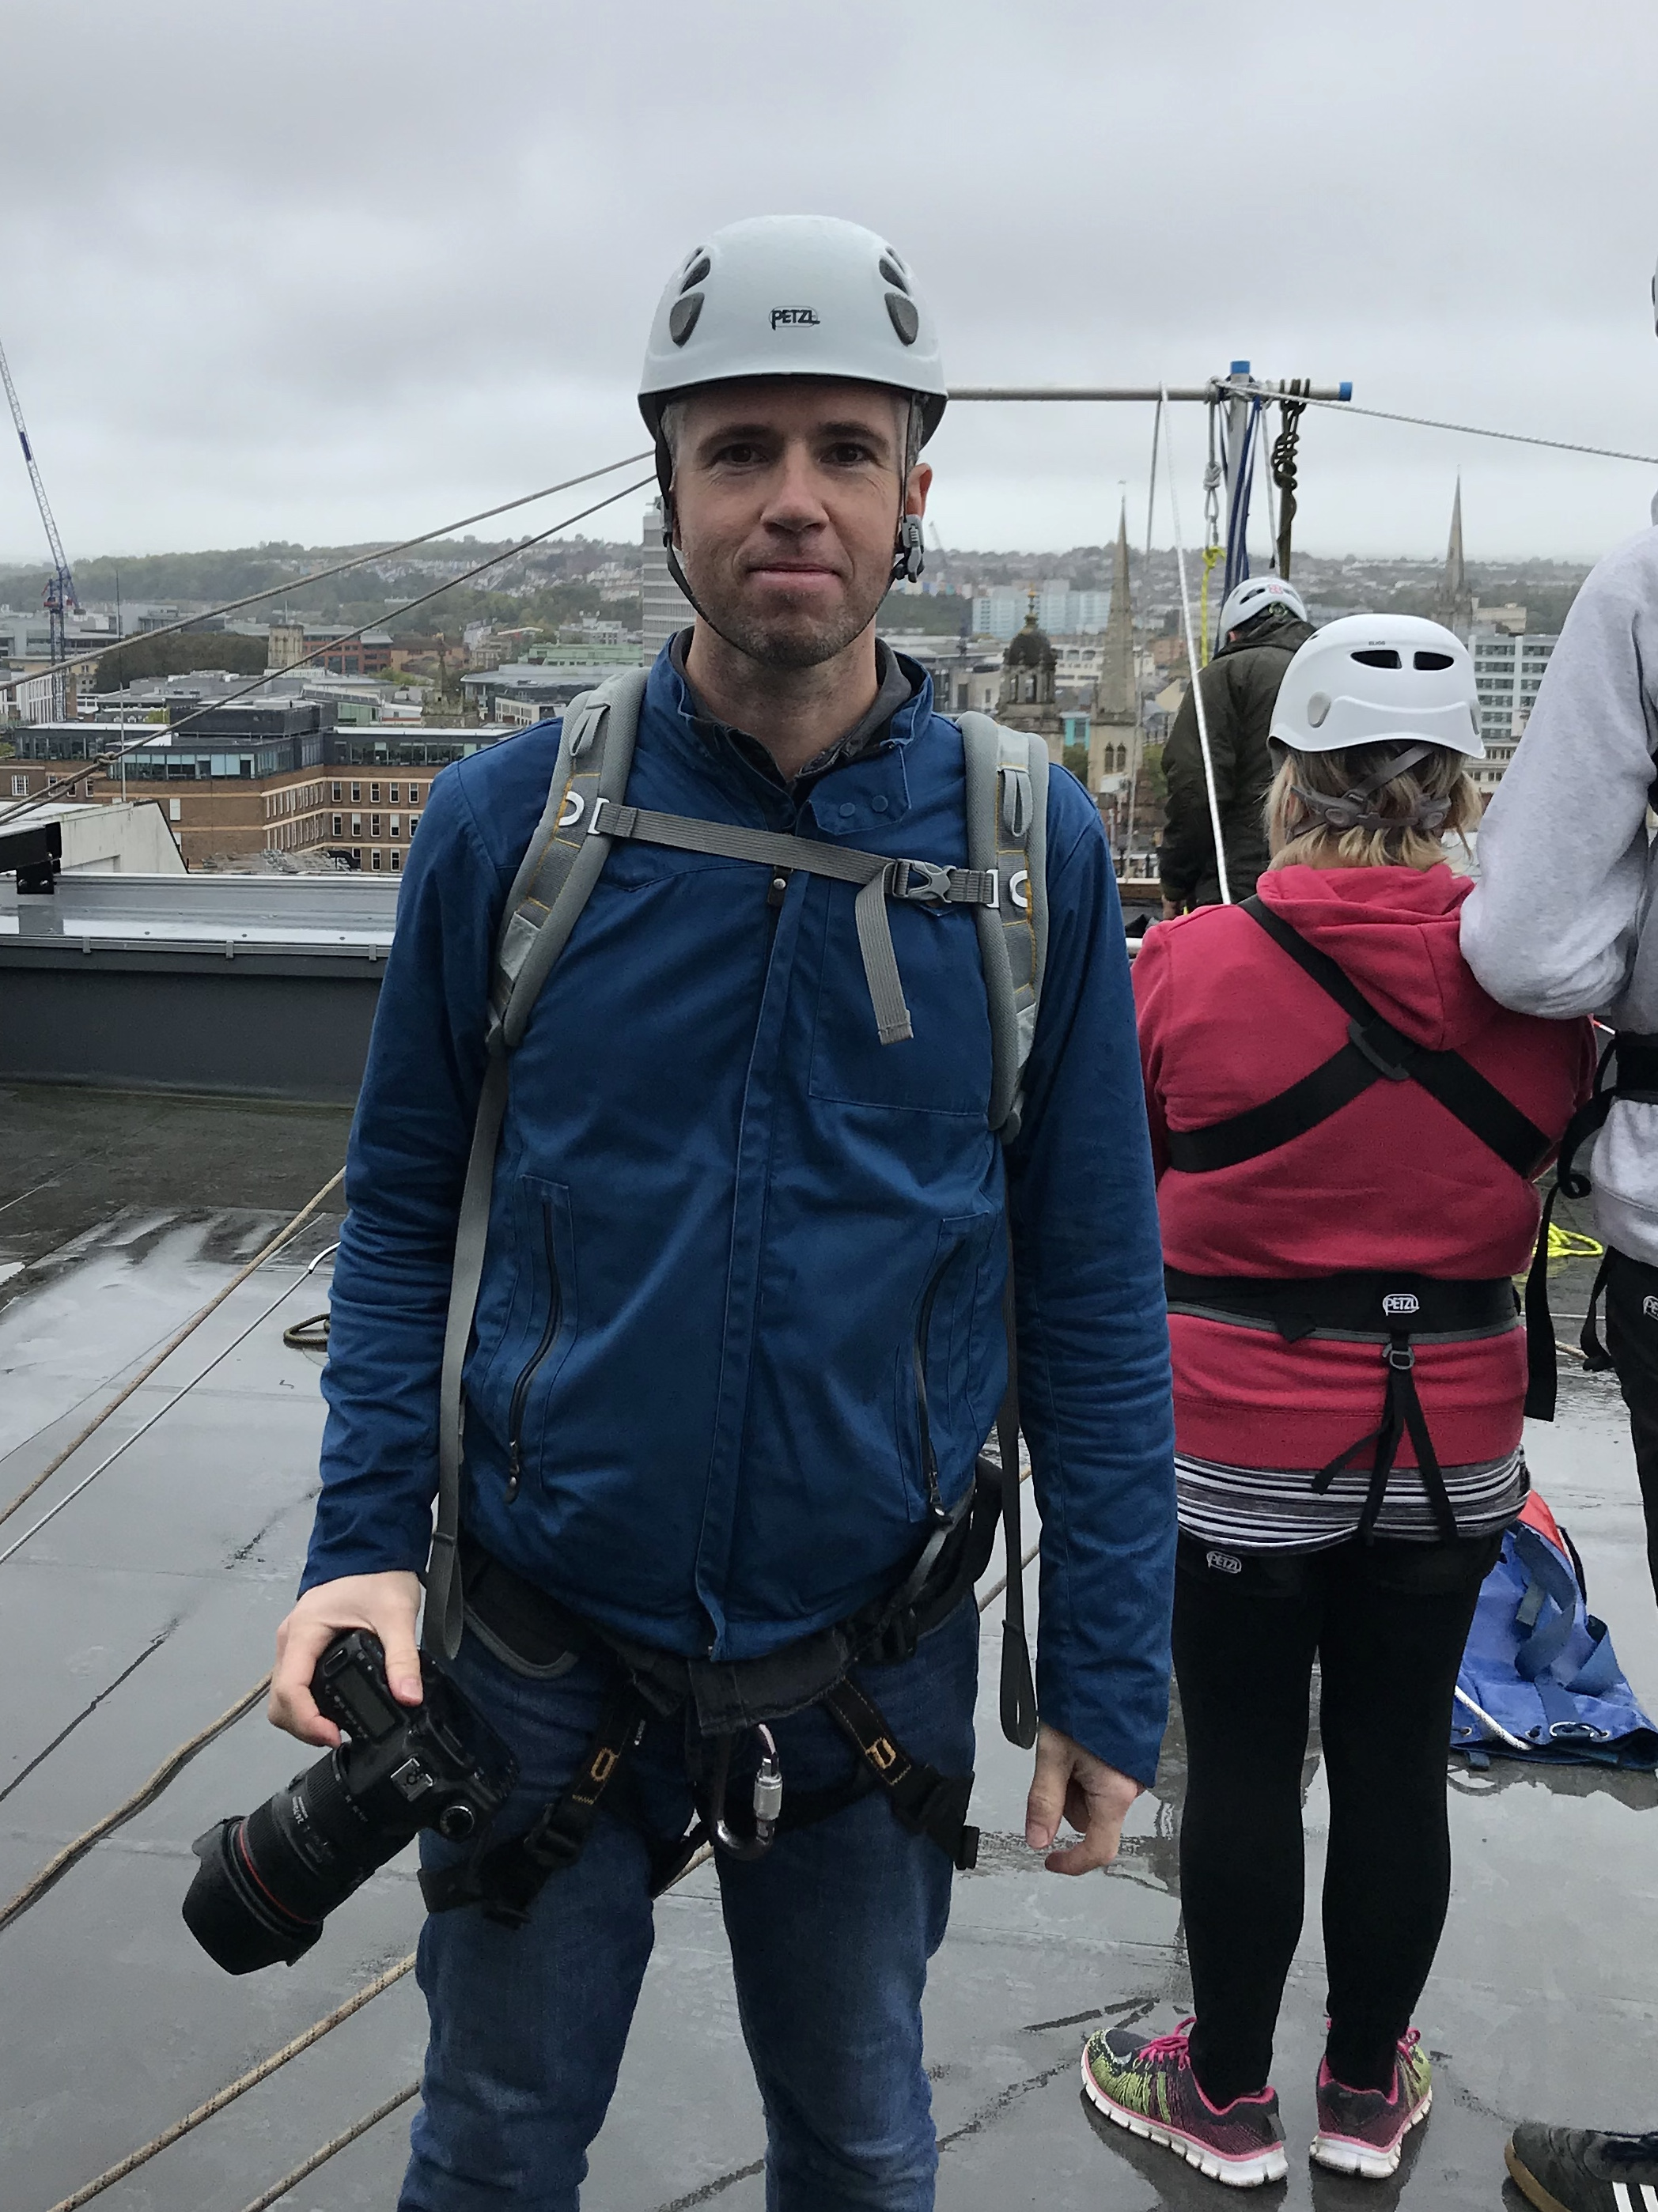 All the gear, no idea :) Health and safety first. In fact it did make me feel more at ease being attached to the ropes up on the roof.